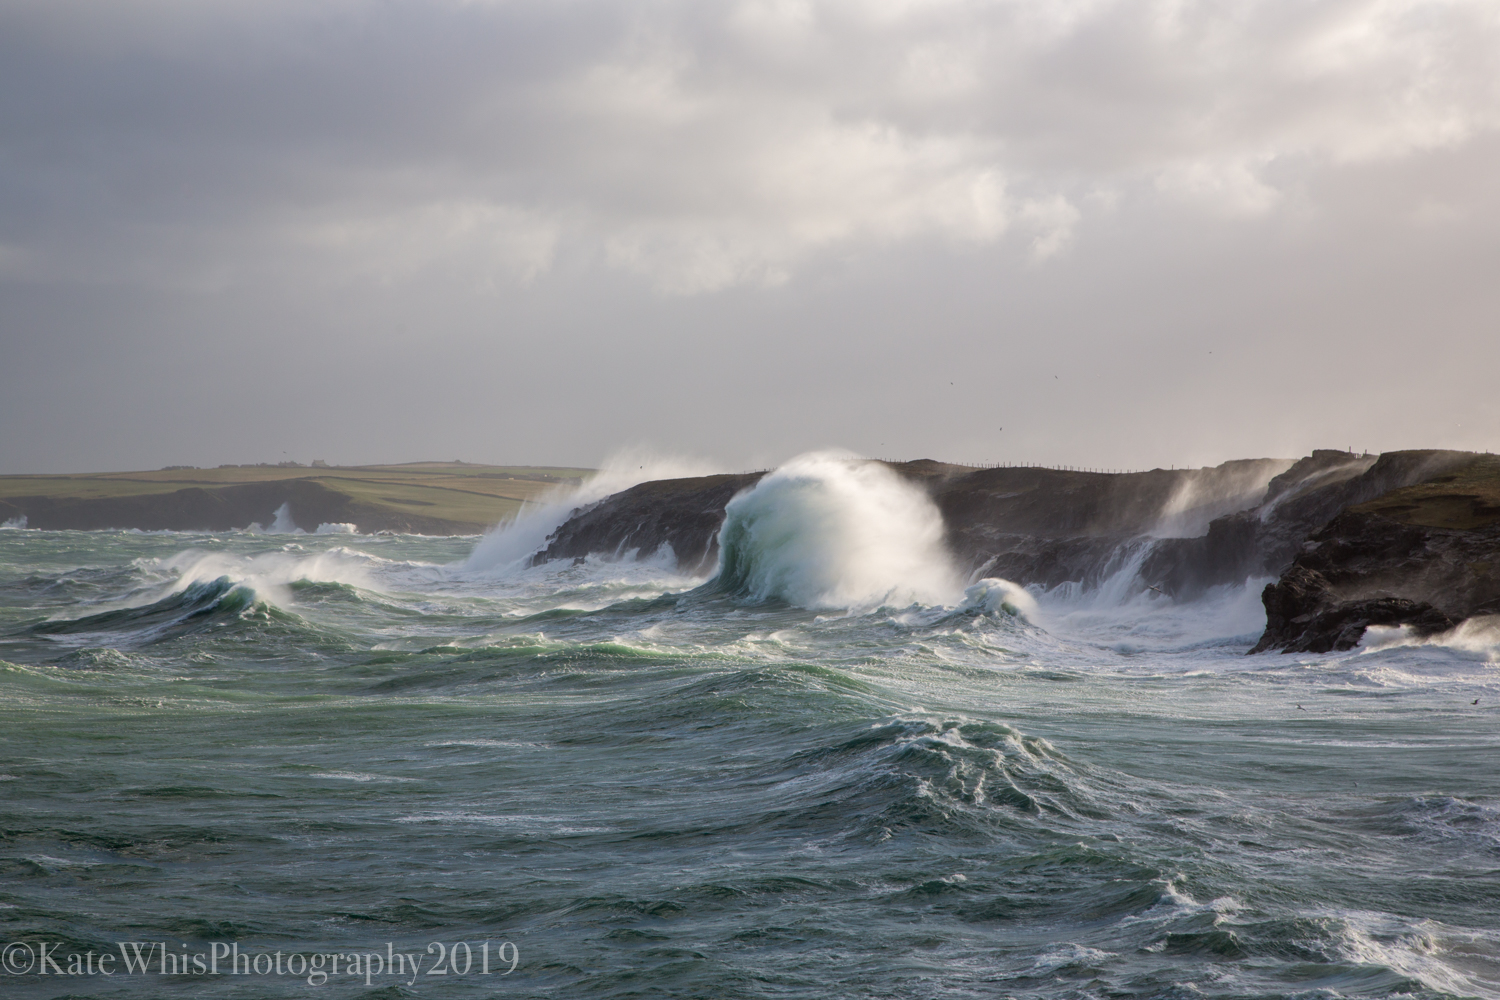 Photograph of big waves at Mother Ivey's Bay